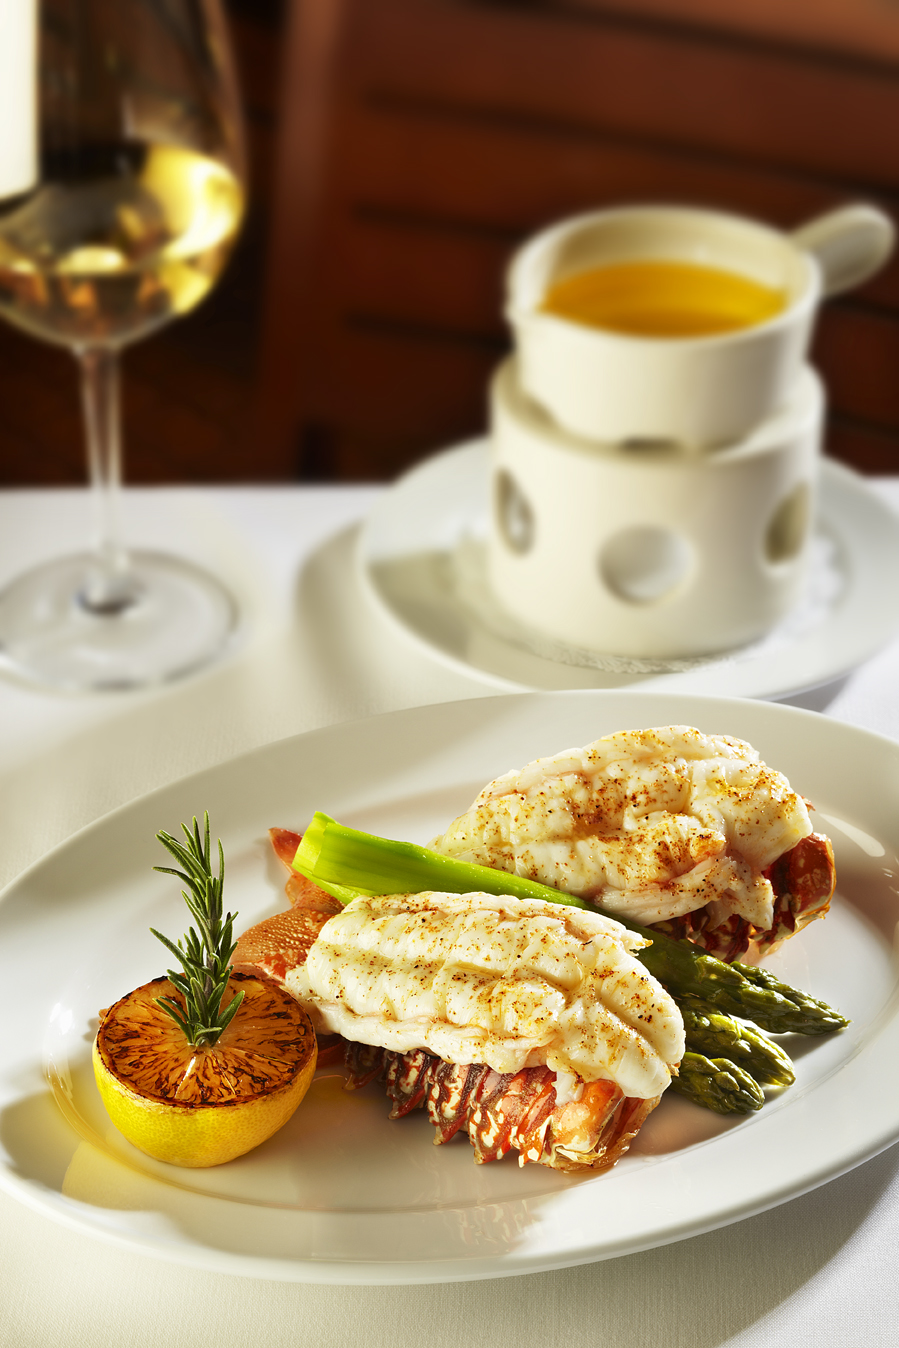 Ocean Prime's twin lobster tails with asparagus and drawn butter for $49